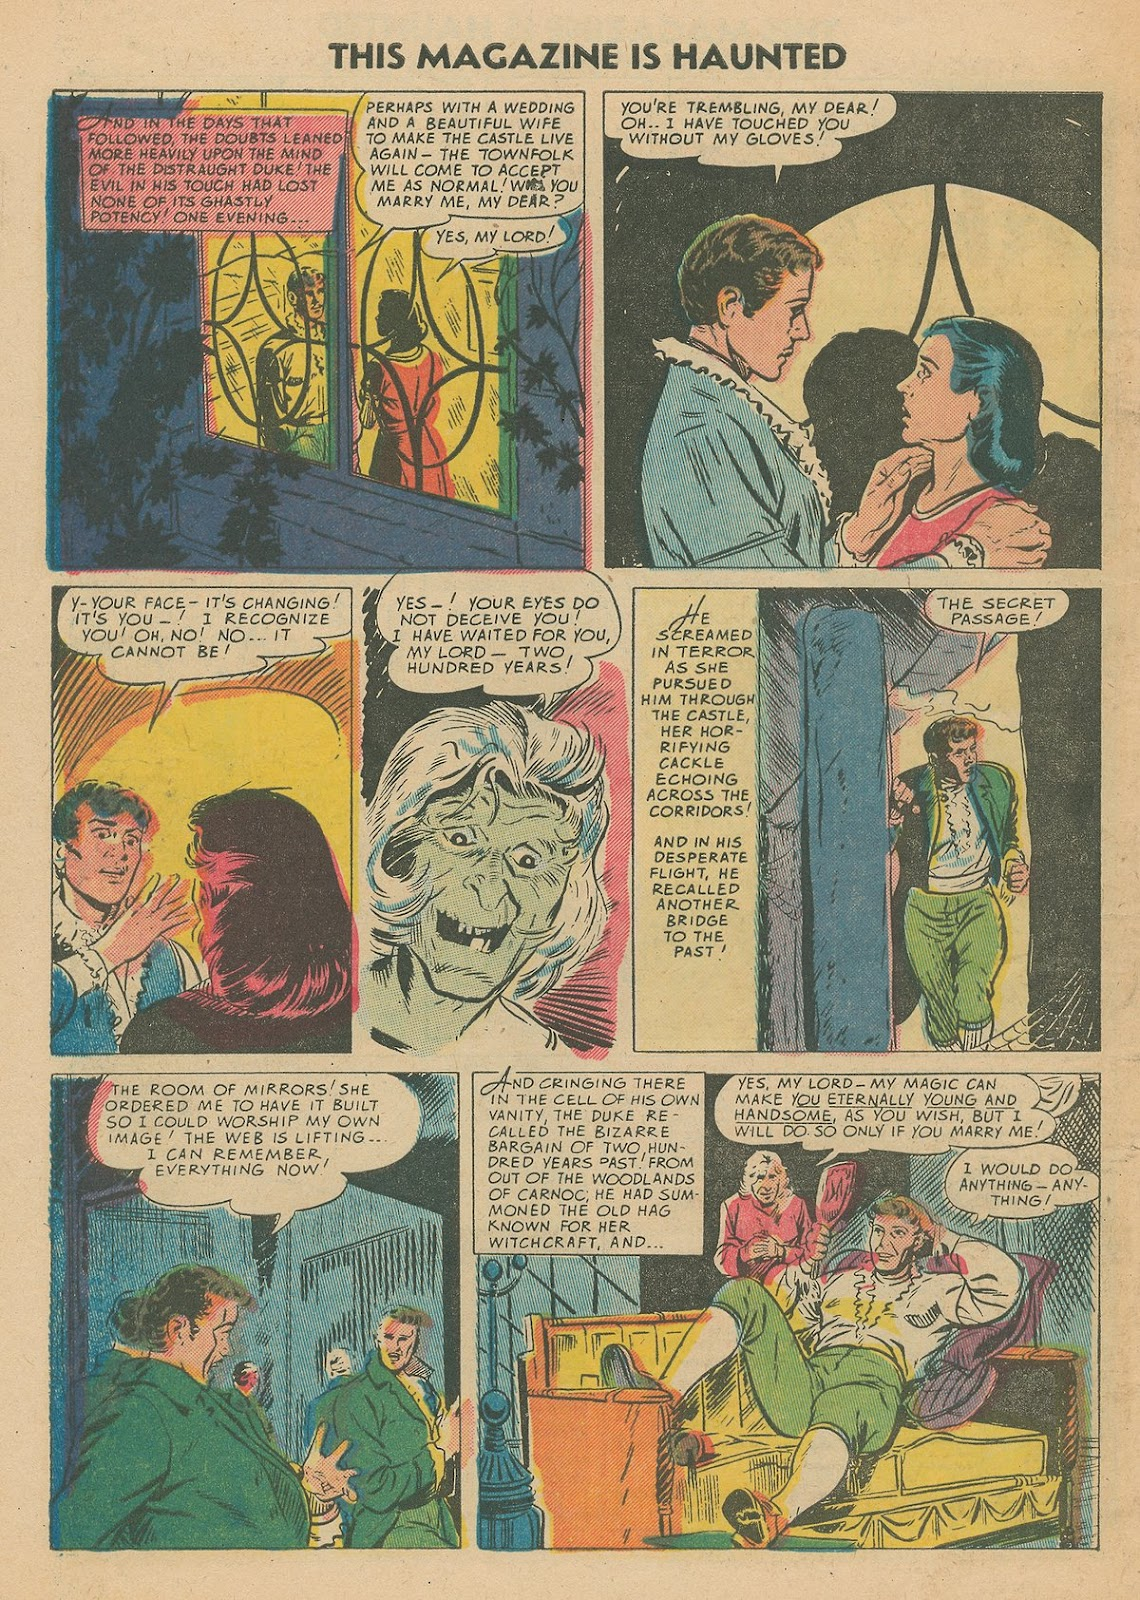 Read online This Magazine Is Haunted comic -  Issue #21 - 30